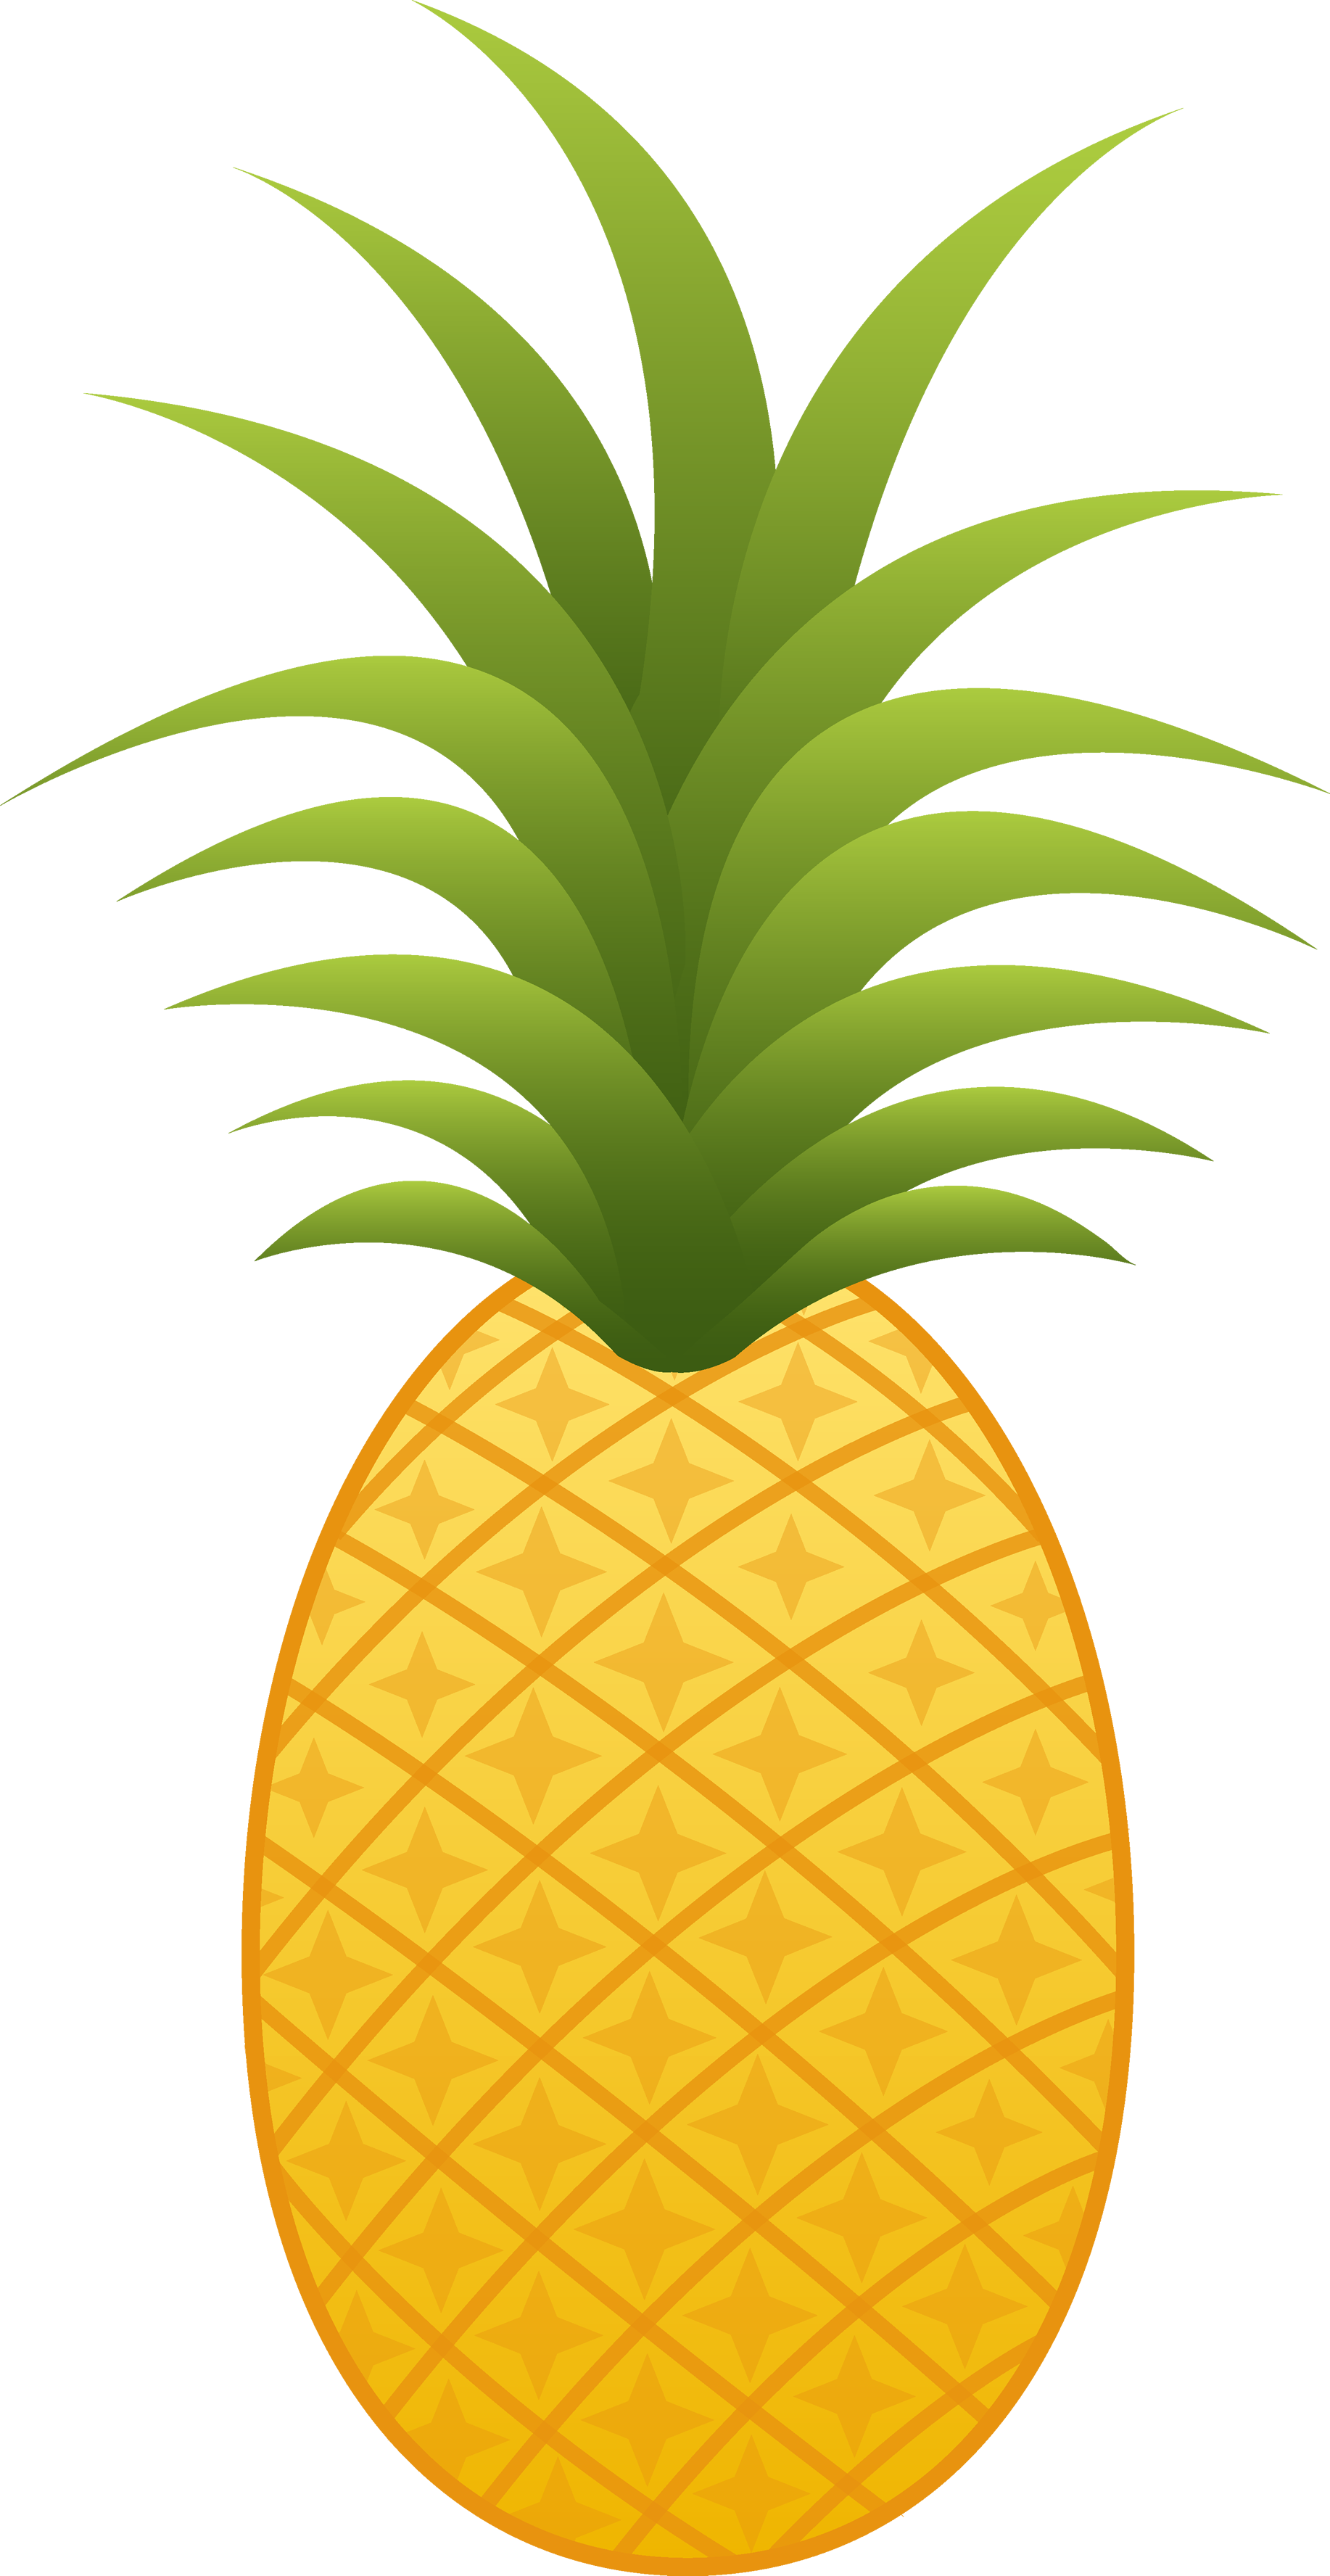 Apple pen clipart clip royalty free library Pinapple Clipart PNG Image - PurePNG | Free transparent CC0 PNG ... clip royalty free library